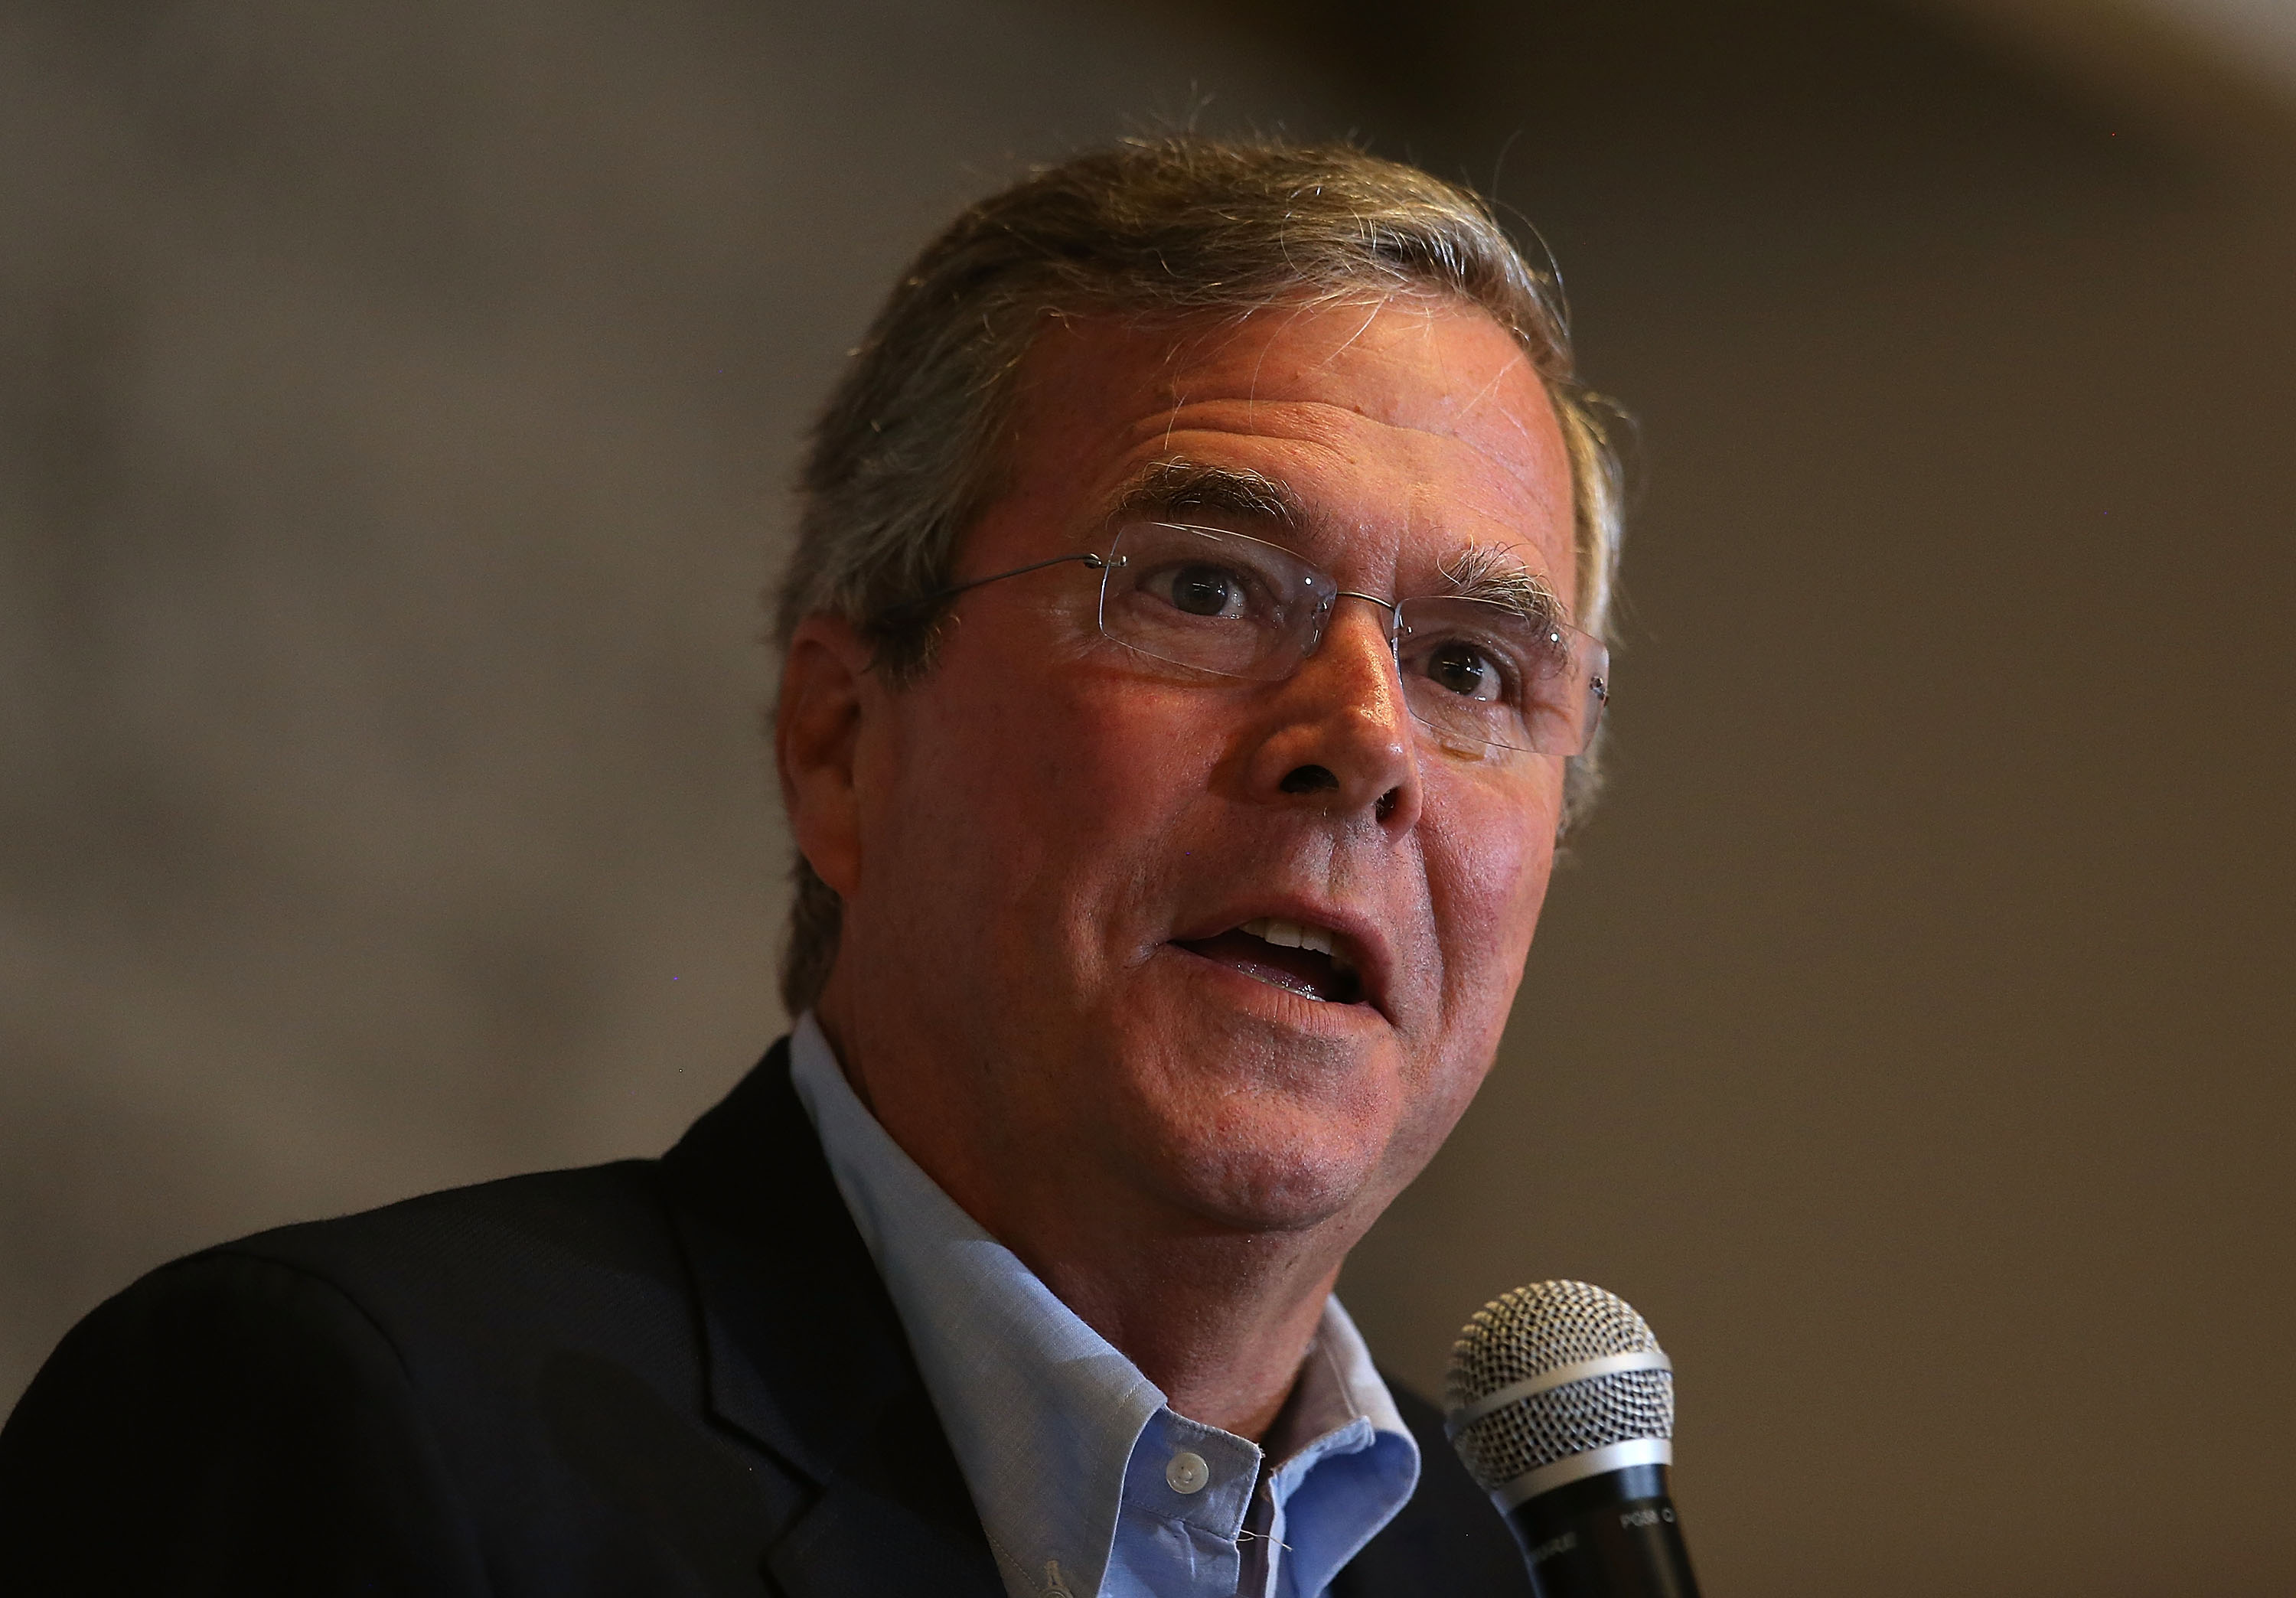 Jeb Bush Quotes Stunning 8 Arrogant Jeb Bush Quotes That Completely Negate His Comment